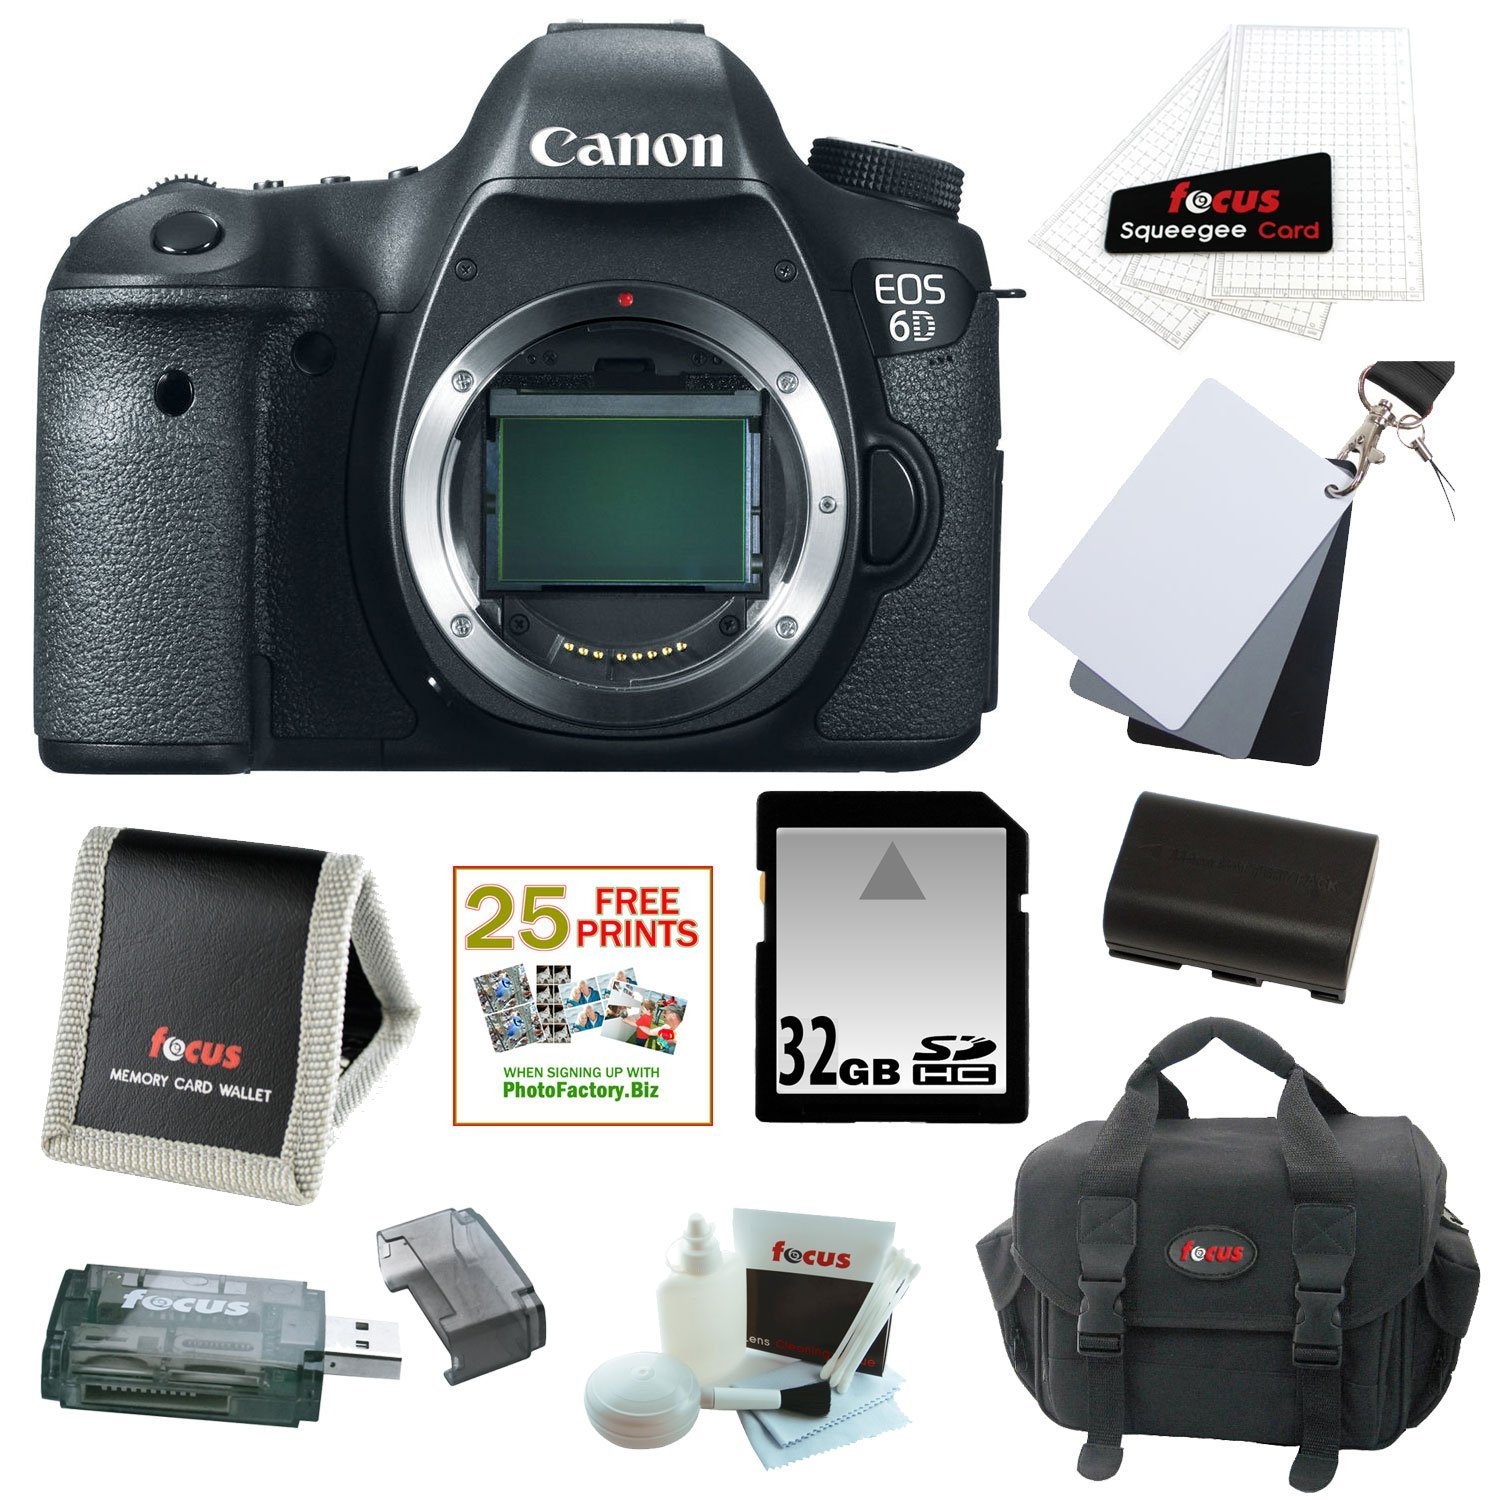 Canon EOS 6D 20.2 MP Full Frame CMOS Sensor Digital SLR Camera (Body Only) with 32GB Deluxe Accessory Bundle